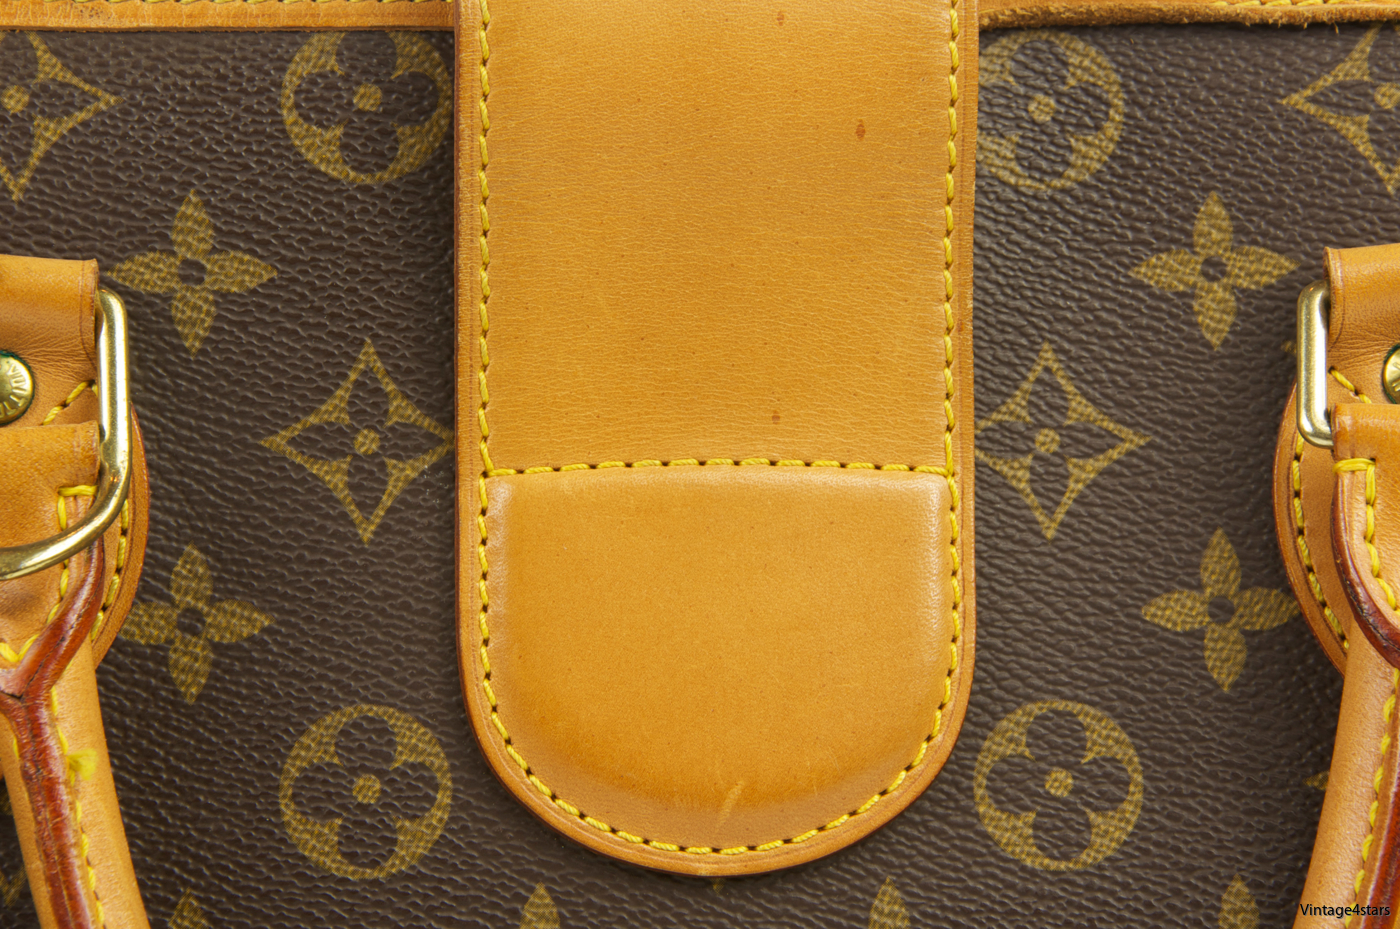 Louis Vuitton Rivoli Monogram 127